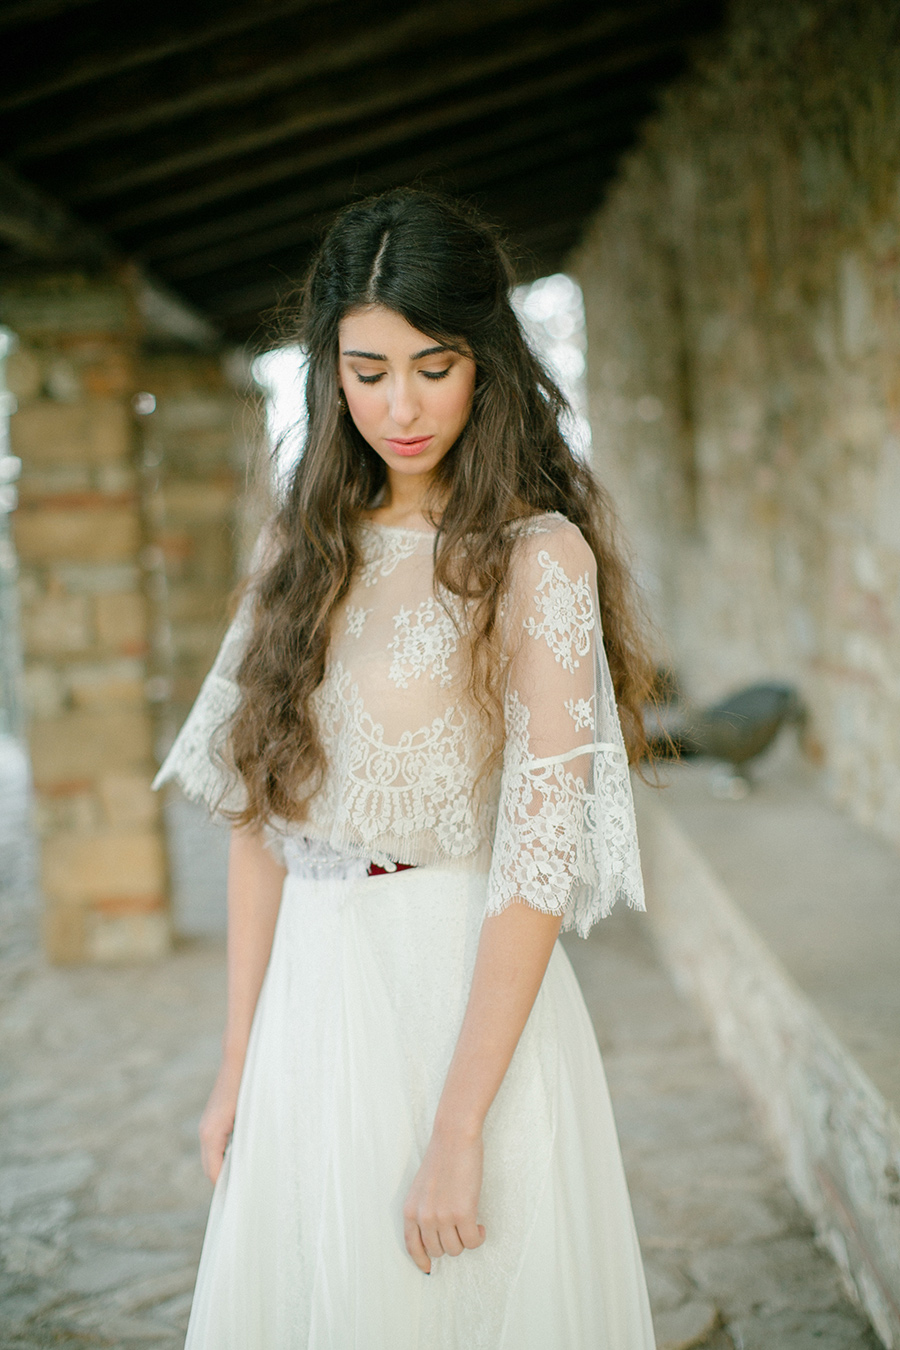 boho chic inspired wedding styled shoot in ancient greece greek wedding dresses Greece Inspired Wedding Dress with French Chantilly lace styled shoot coordinated by Love 4 Wed